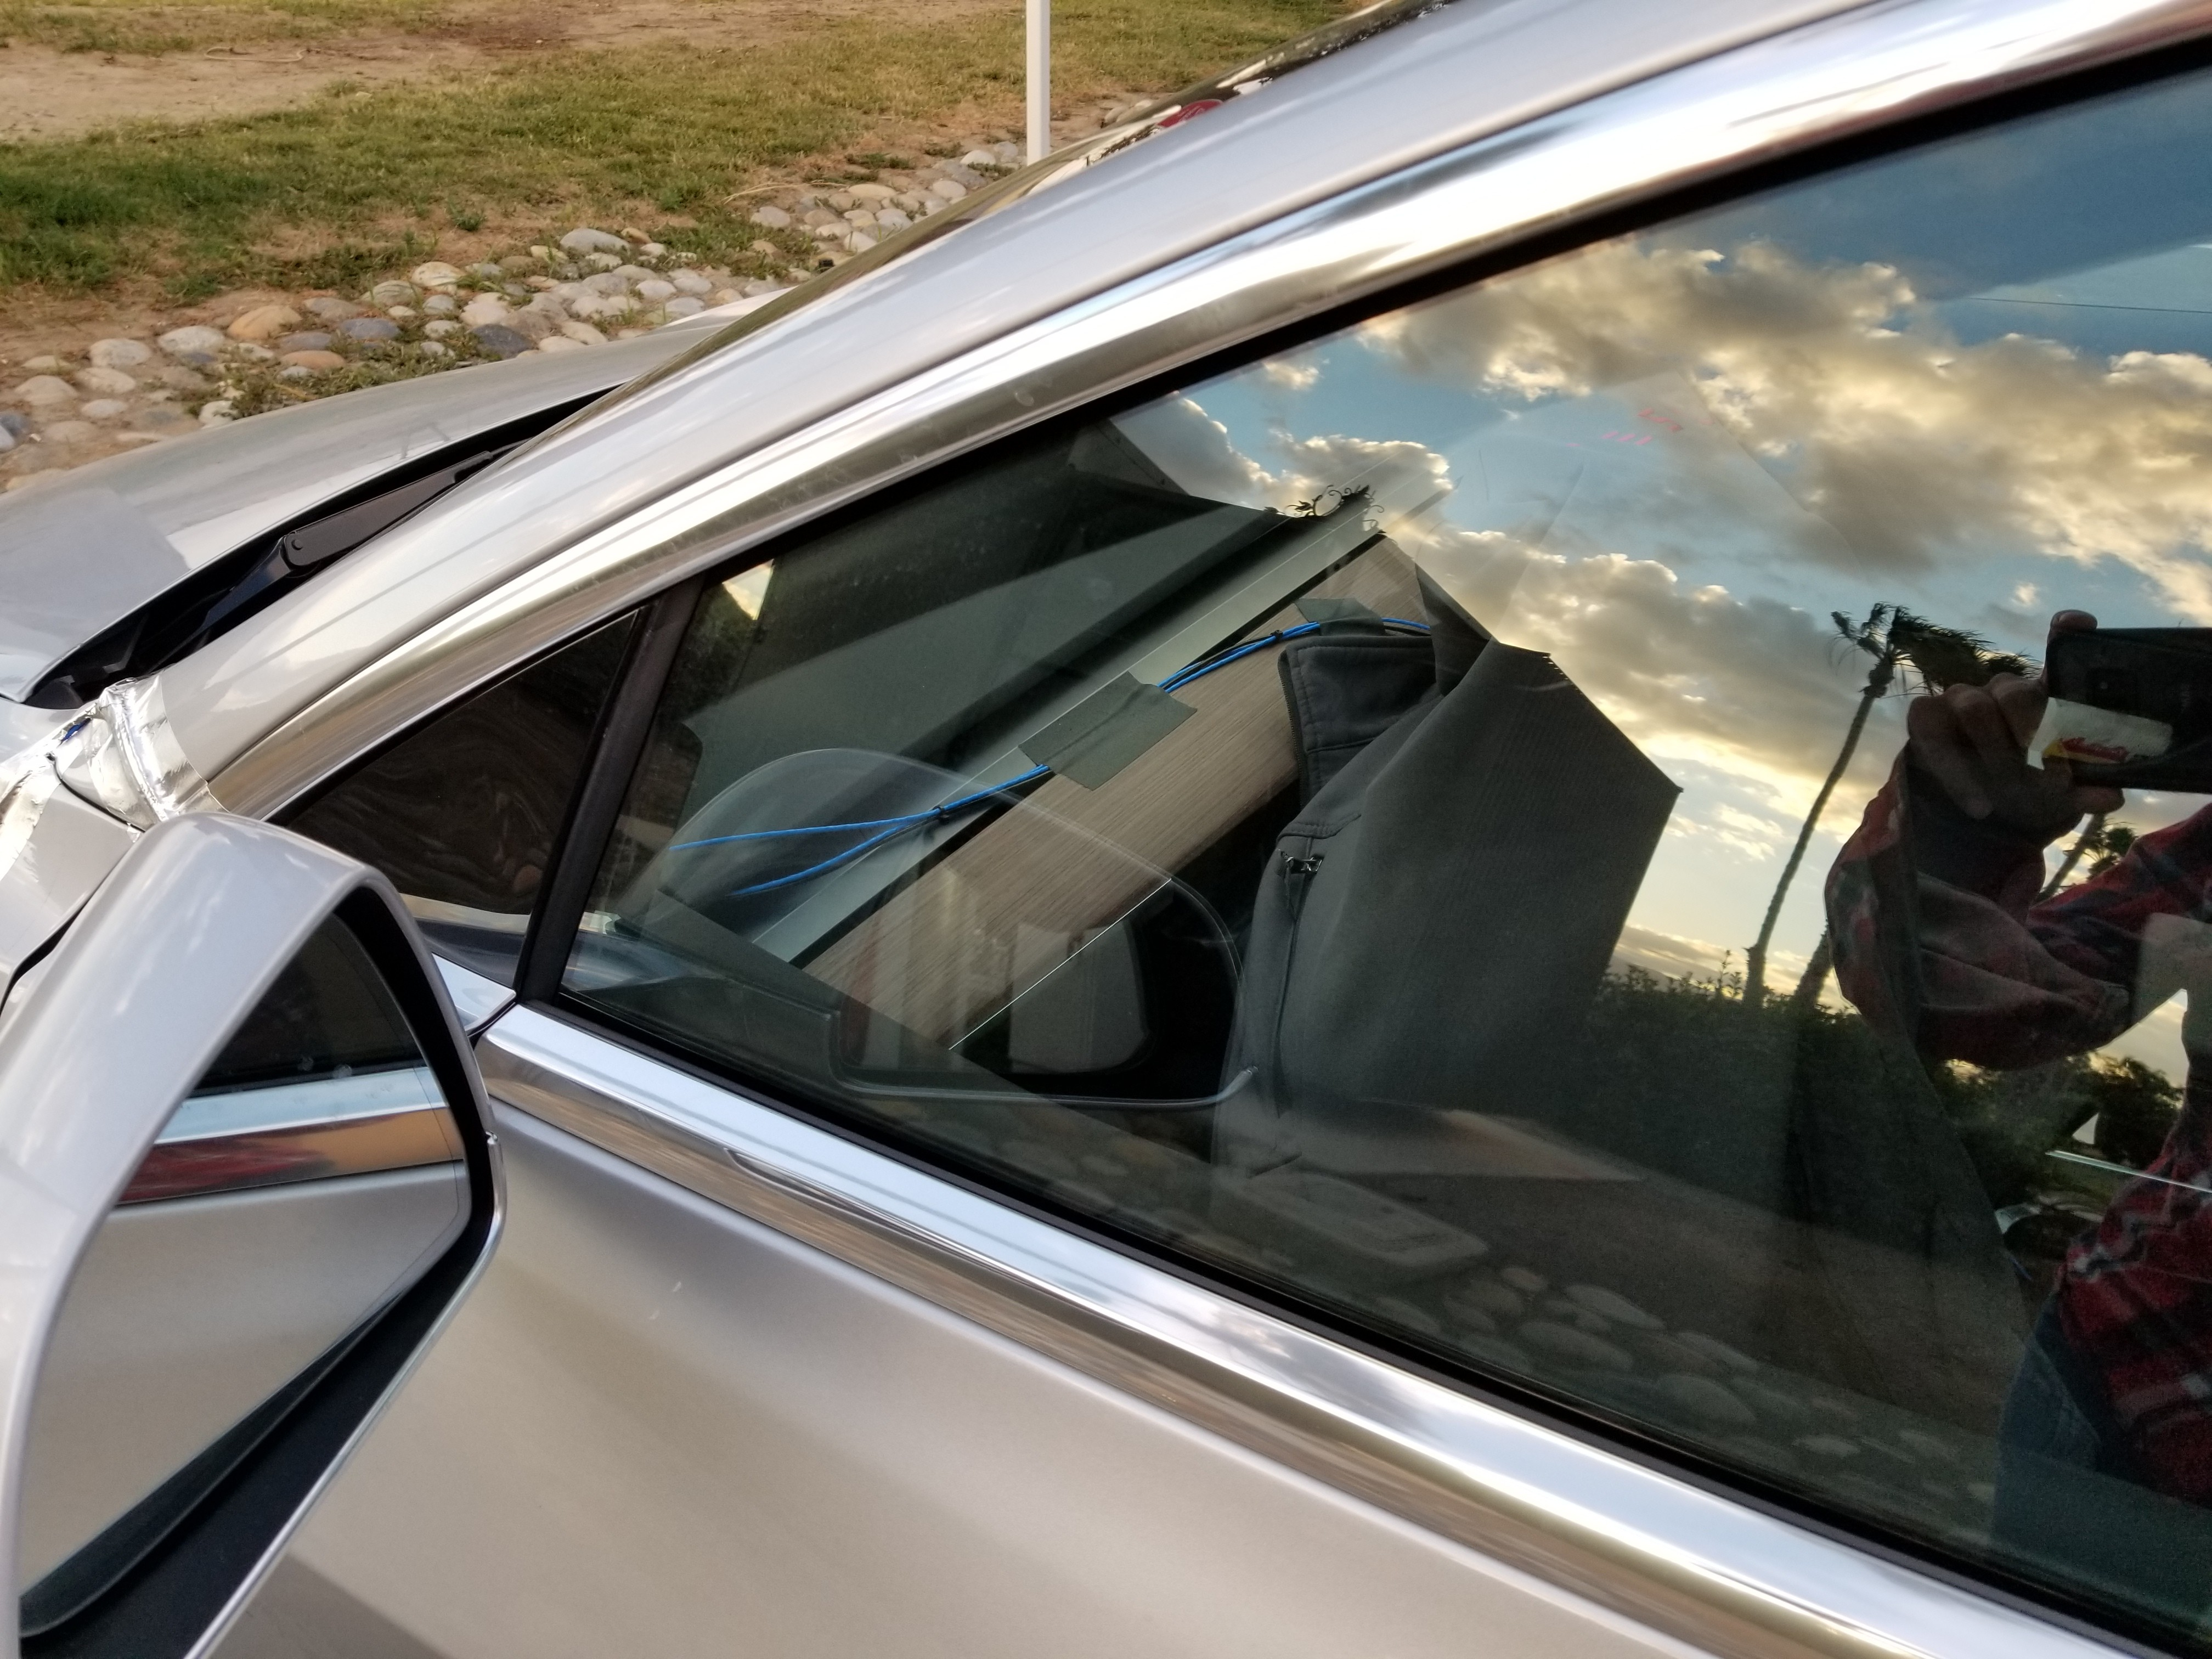 Closest Look Yet At Tesla Model 3 Exposes Panel Gaps, Manual